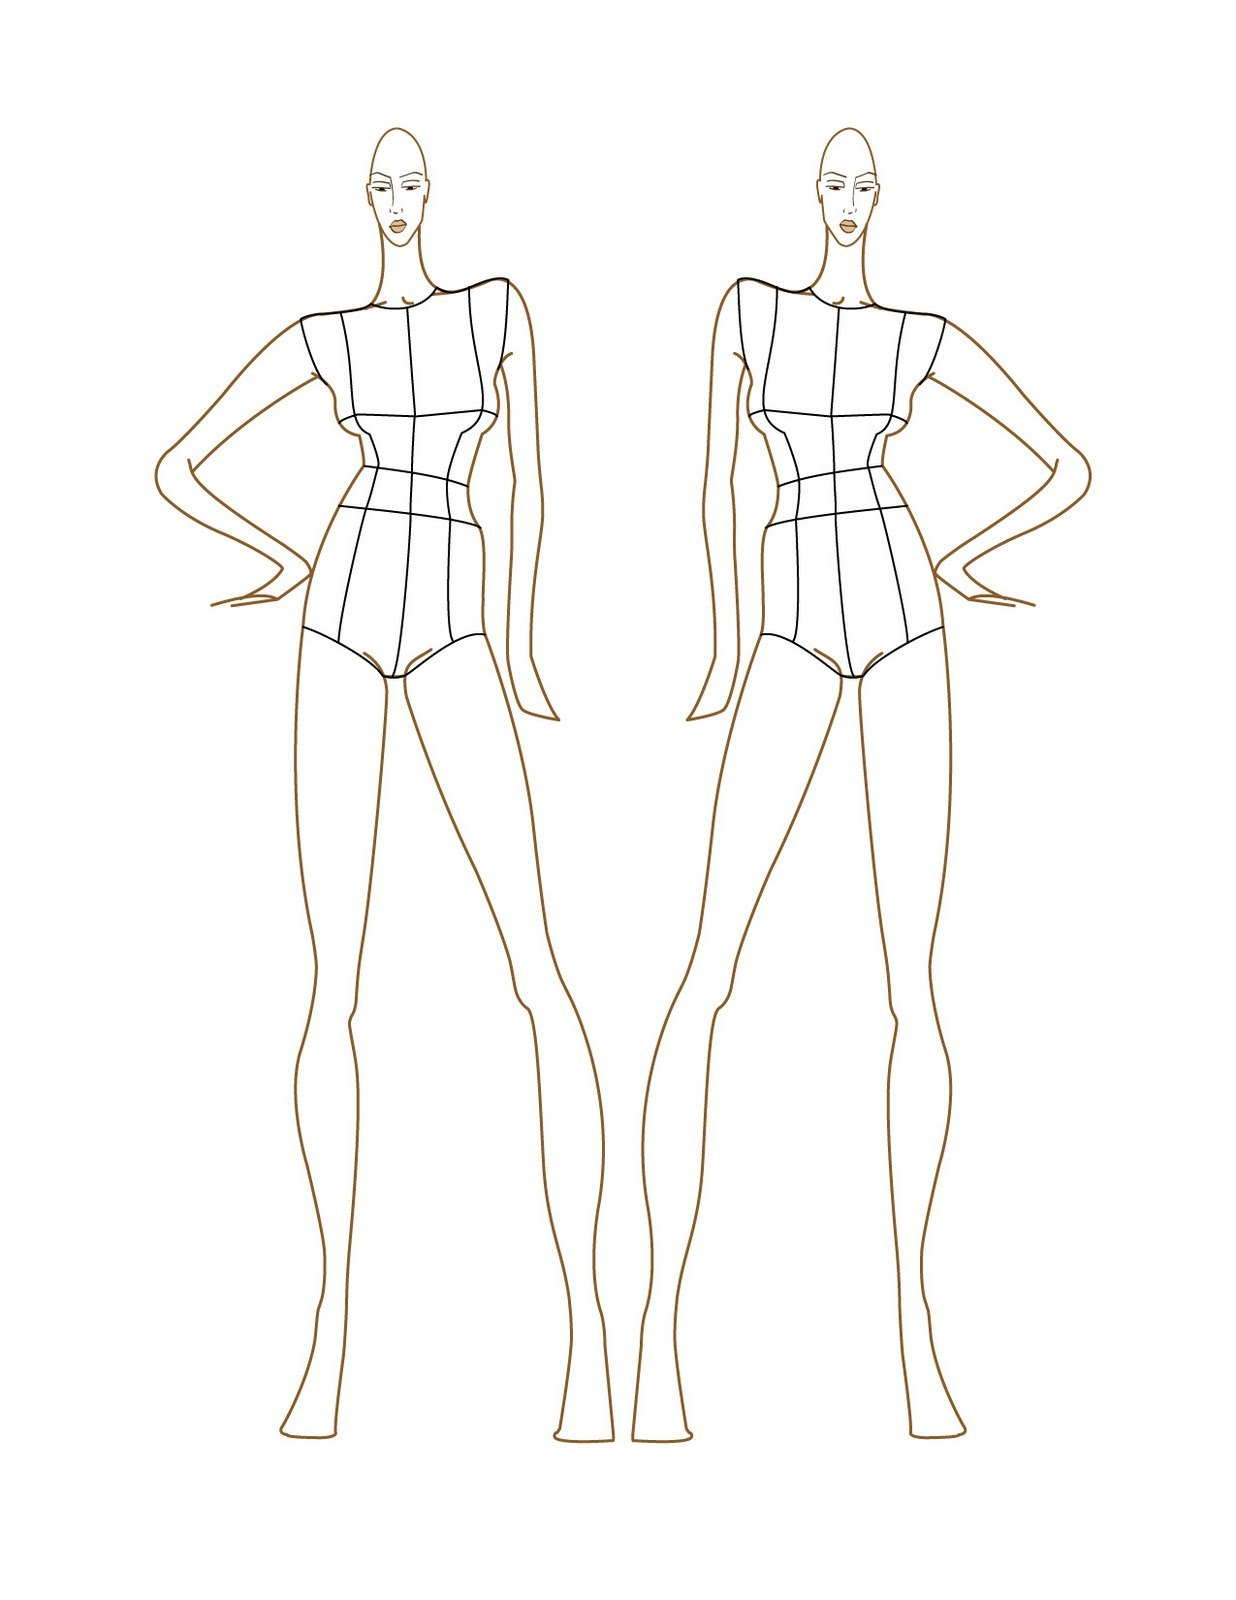 Blank Body Sketch At Paintingvalley  Explore Collection Of With Blank Model Sketch Template